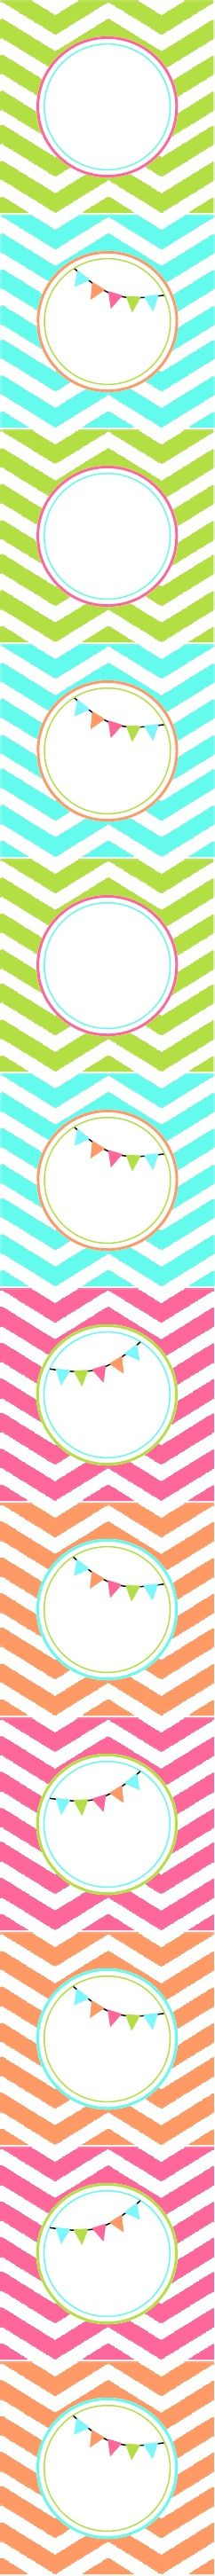 Free printable Bright Chevron Party Circles - Tomkat Studio - TCC